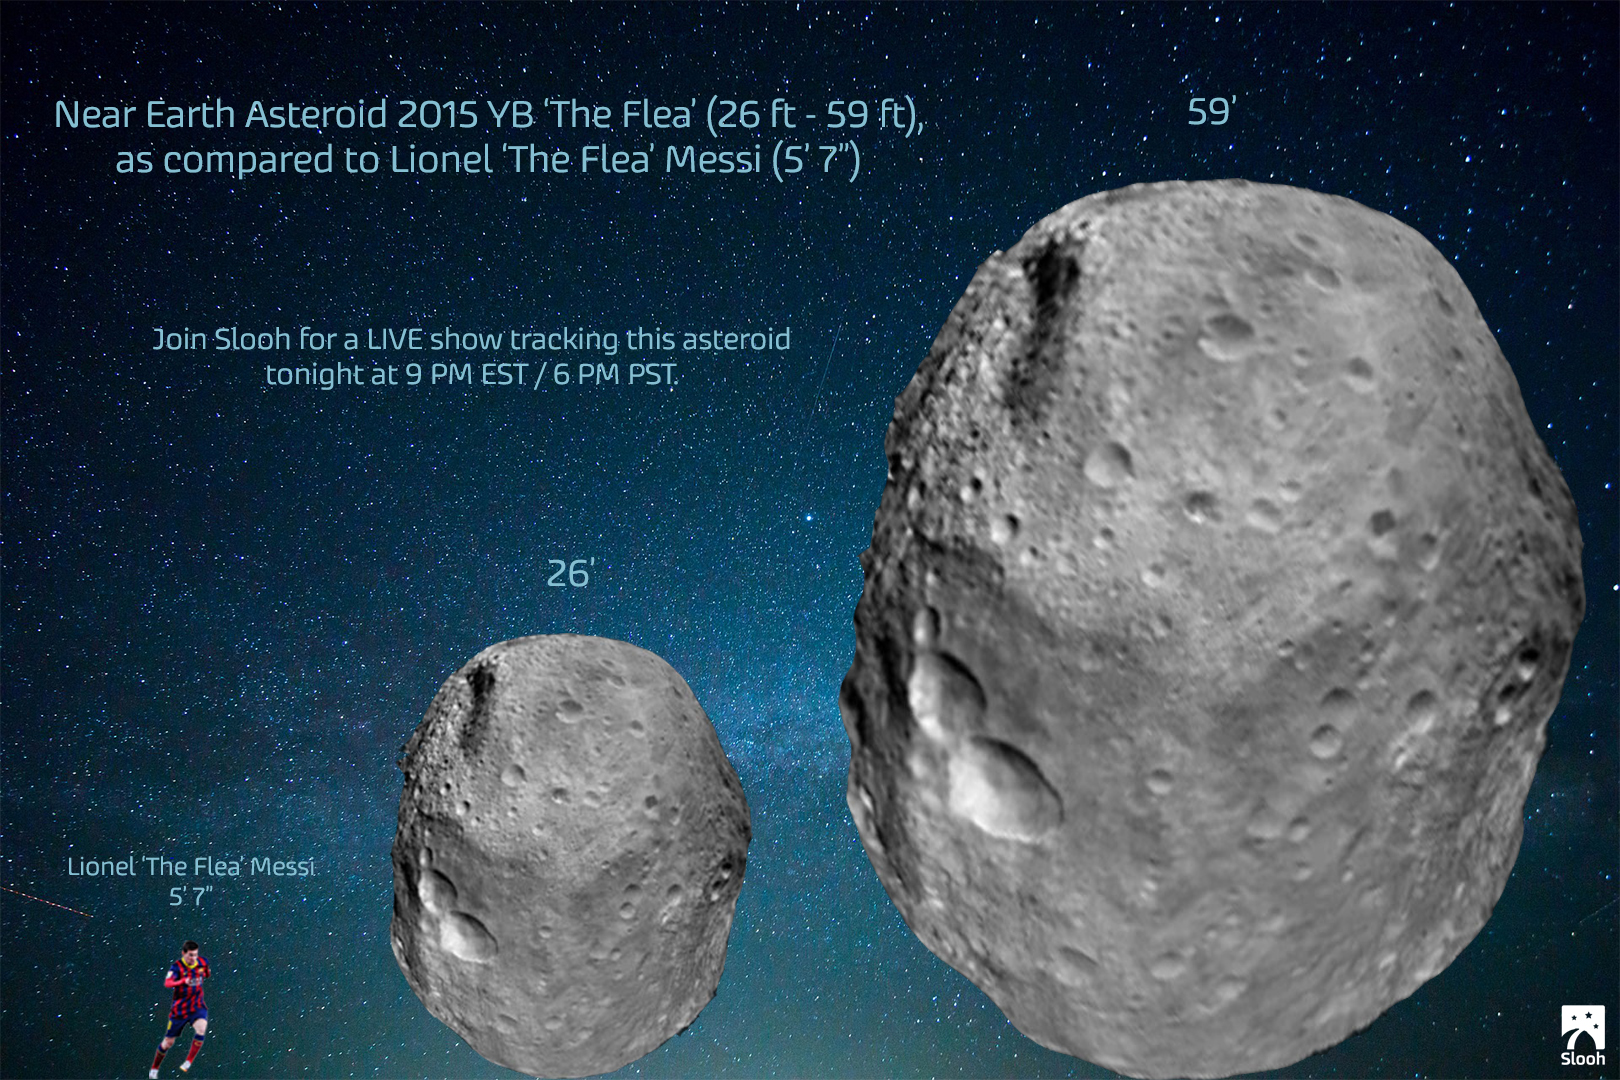 Bus-Size Asteroid 'The Flea' Buzzes Earth